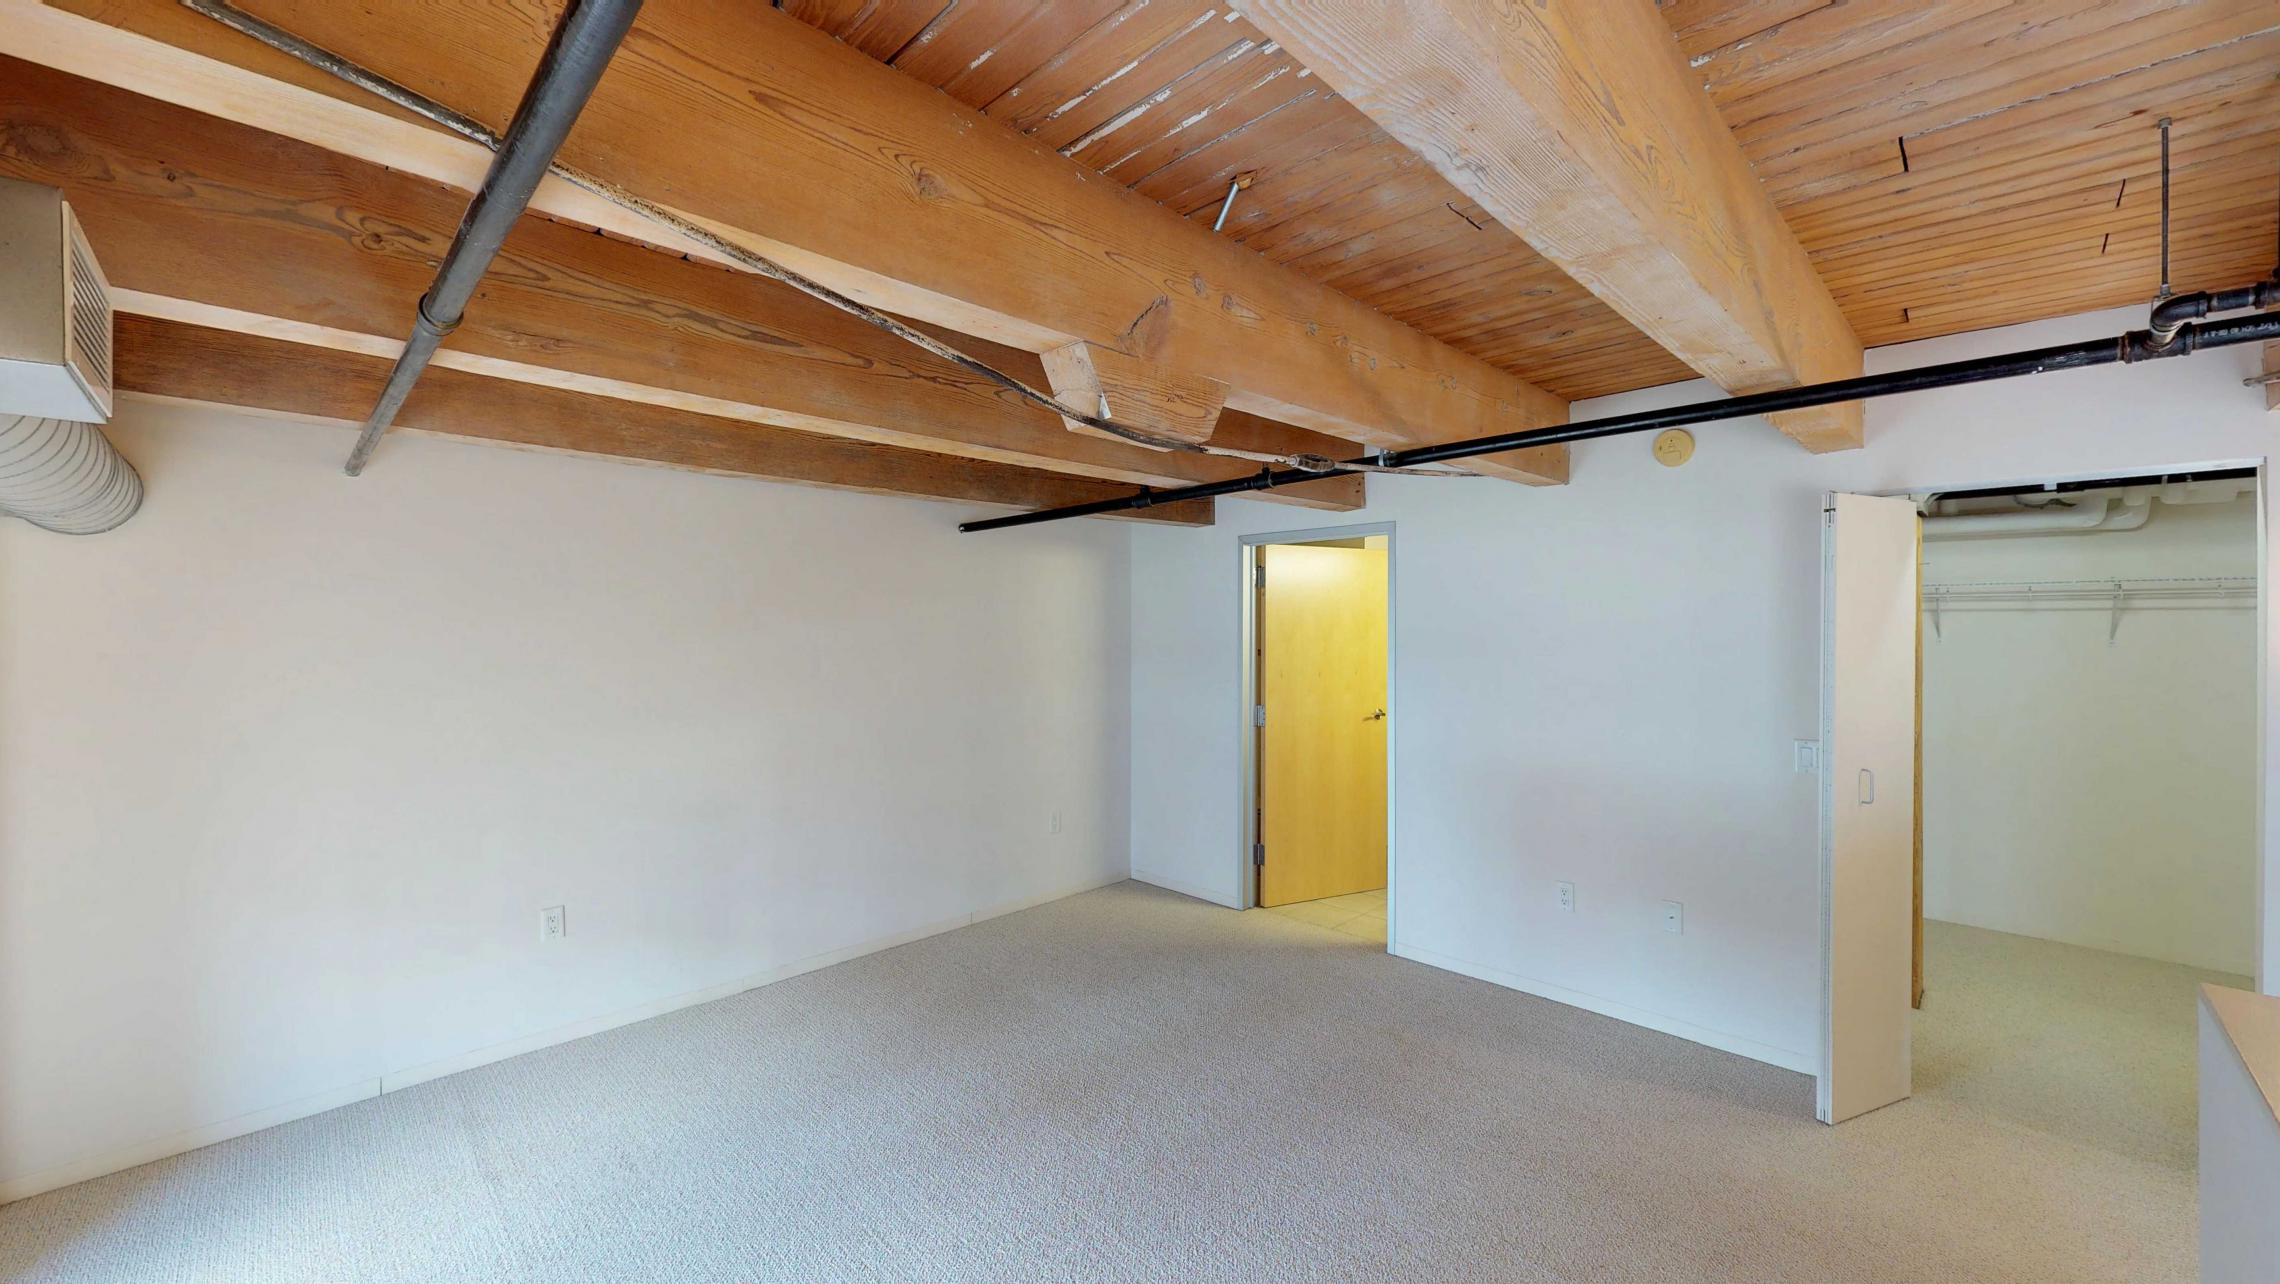 Tobacco-Lofts-E203-Historic-Two-bedroom-lofted-design-exposed-brick-downtown